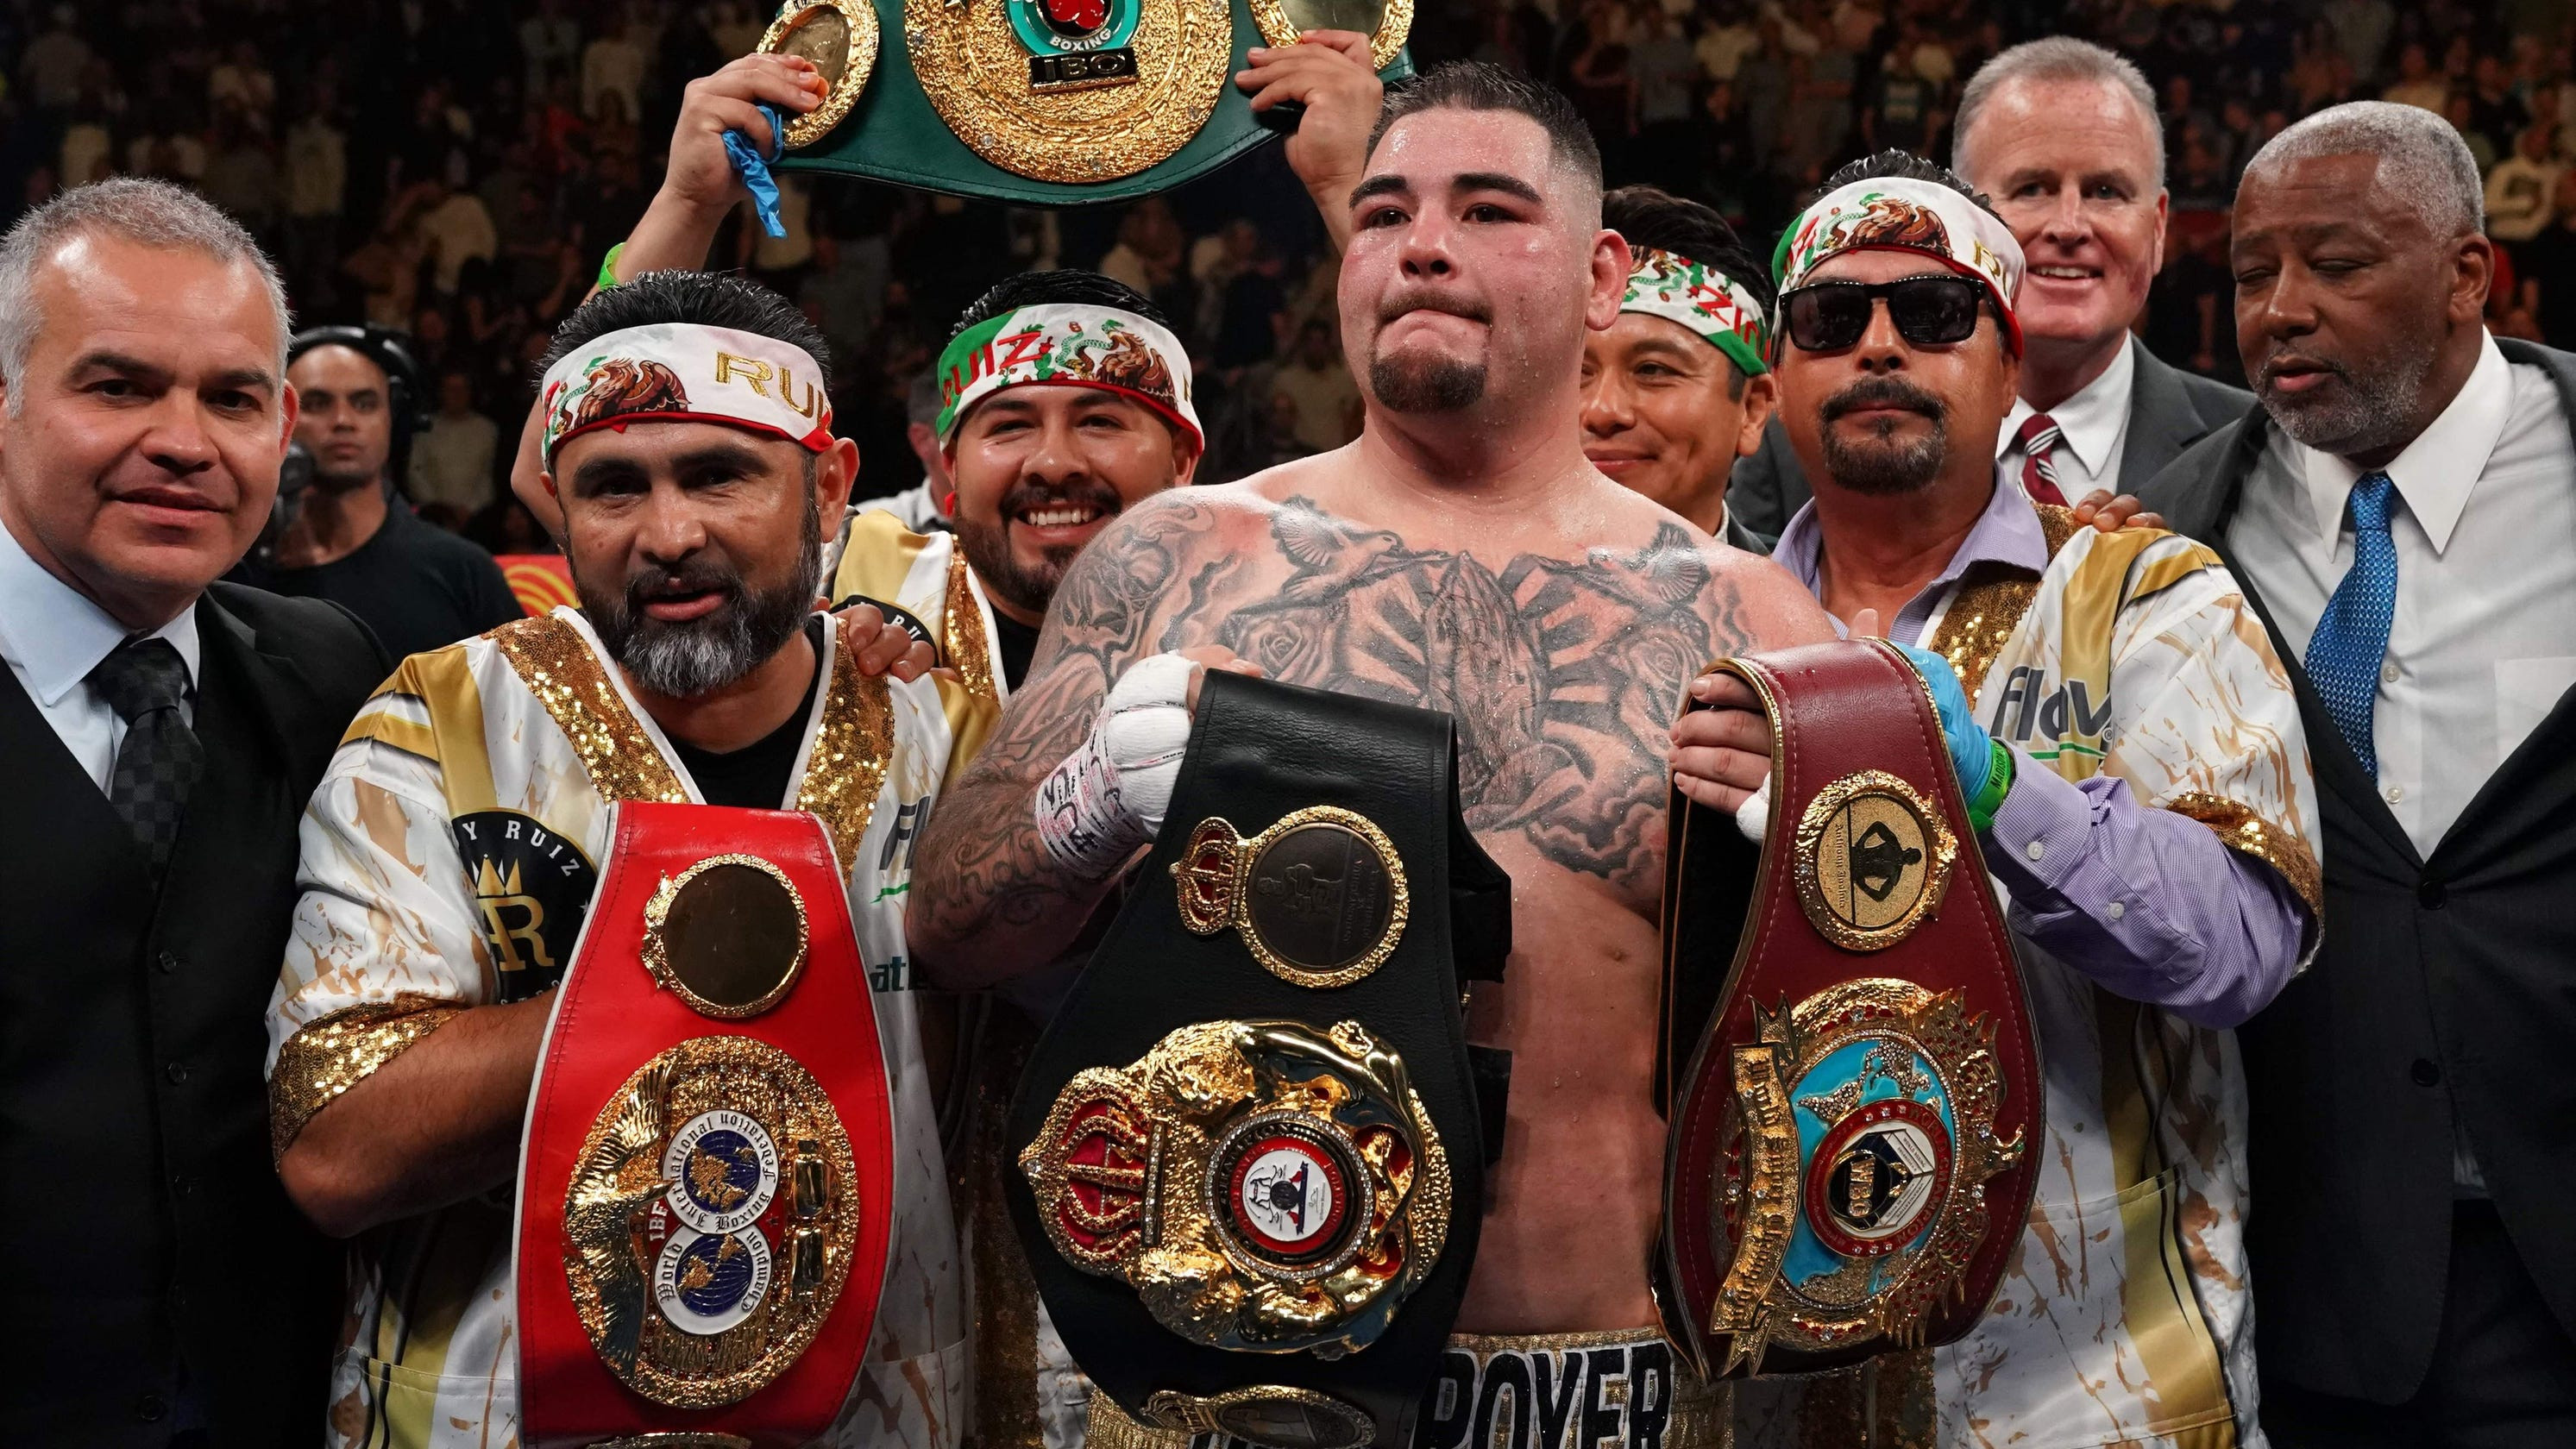 Anthony Joshua will earn ?20 million despite losing while Andy Ruiz Jr will take home just ?5m after winning the world title fight